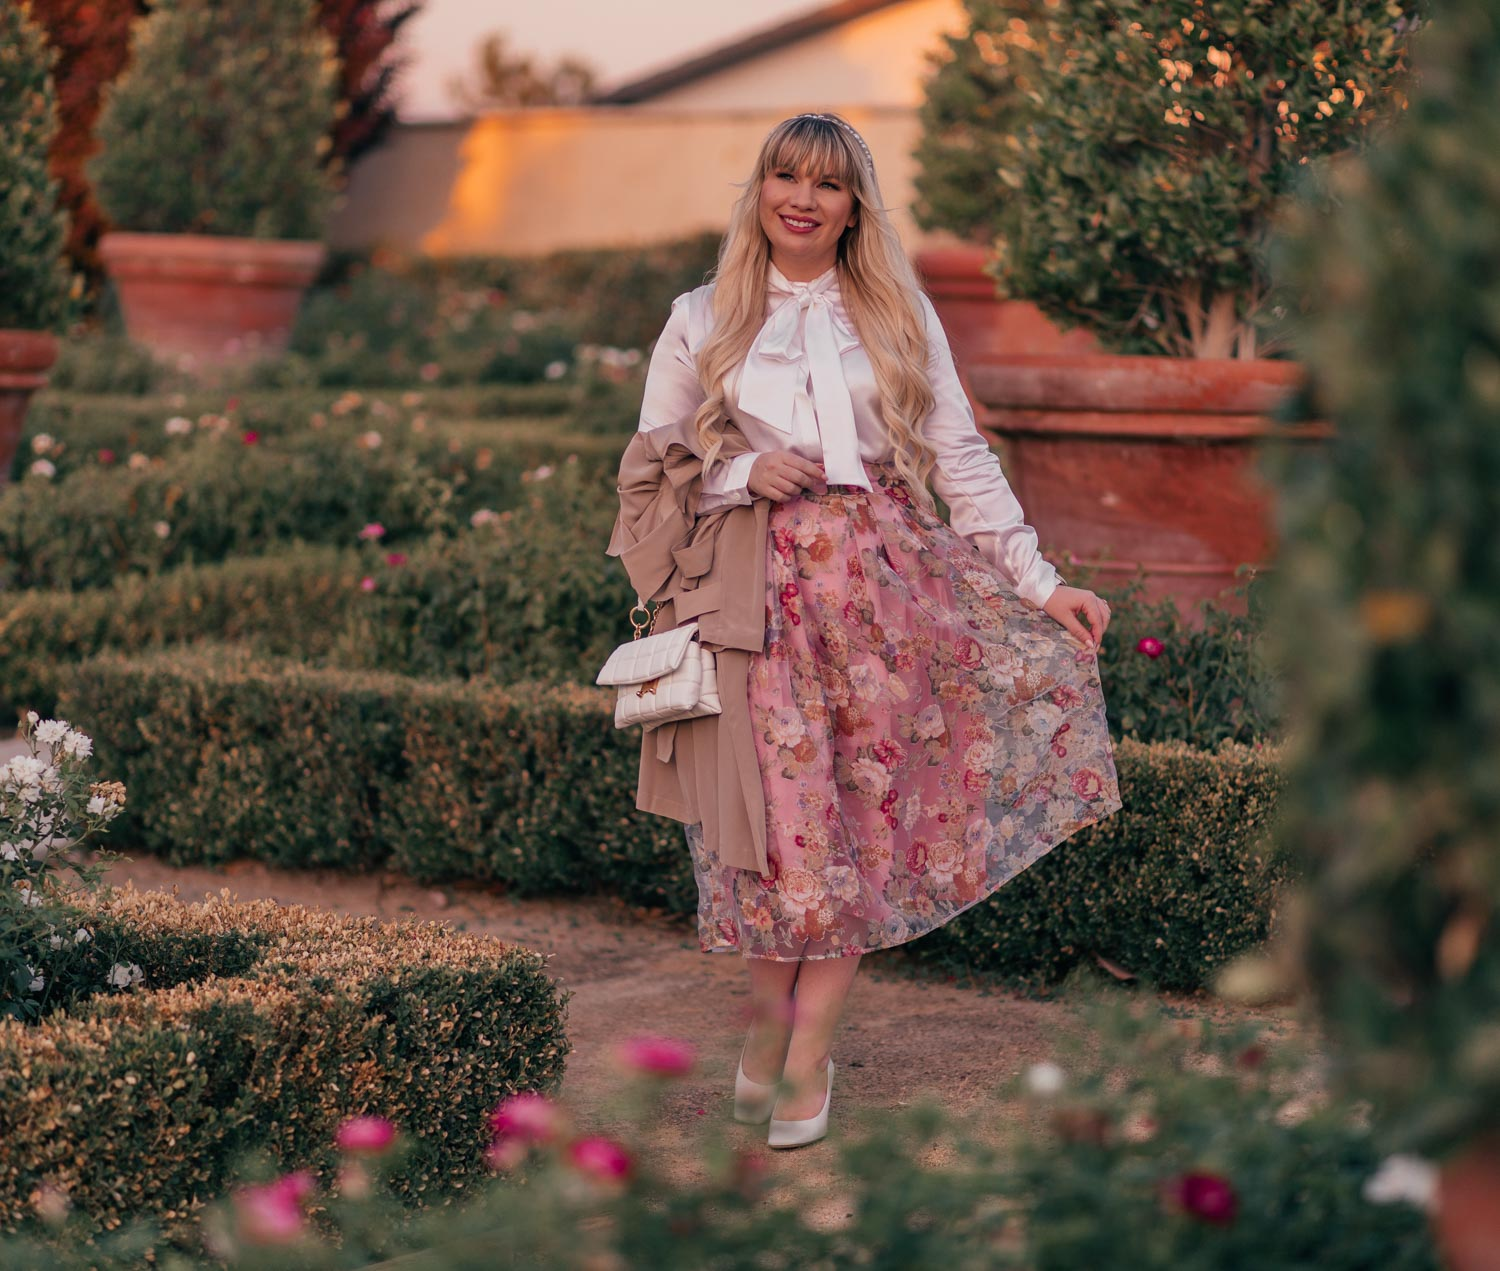 Feminine fashion blogger Elizabeth Hugen of Lizzie in Lace shares How to Style a Classically Feminine Outfit including a lilysilk blouse and trench coat